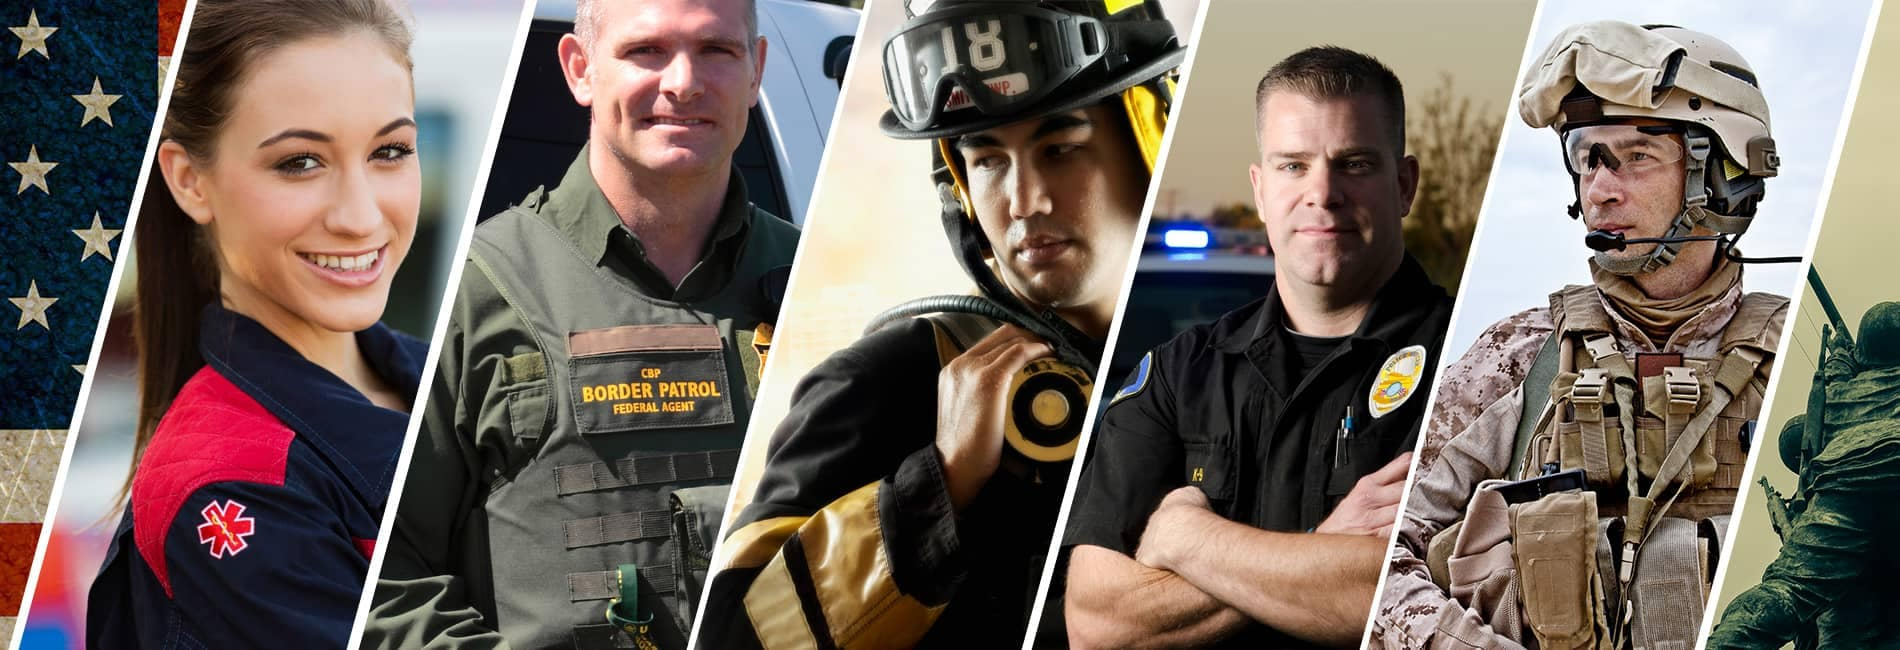 Photo collage of first responders in uniform